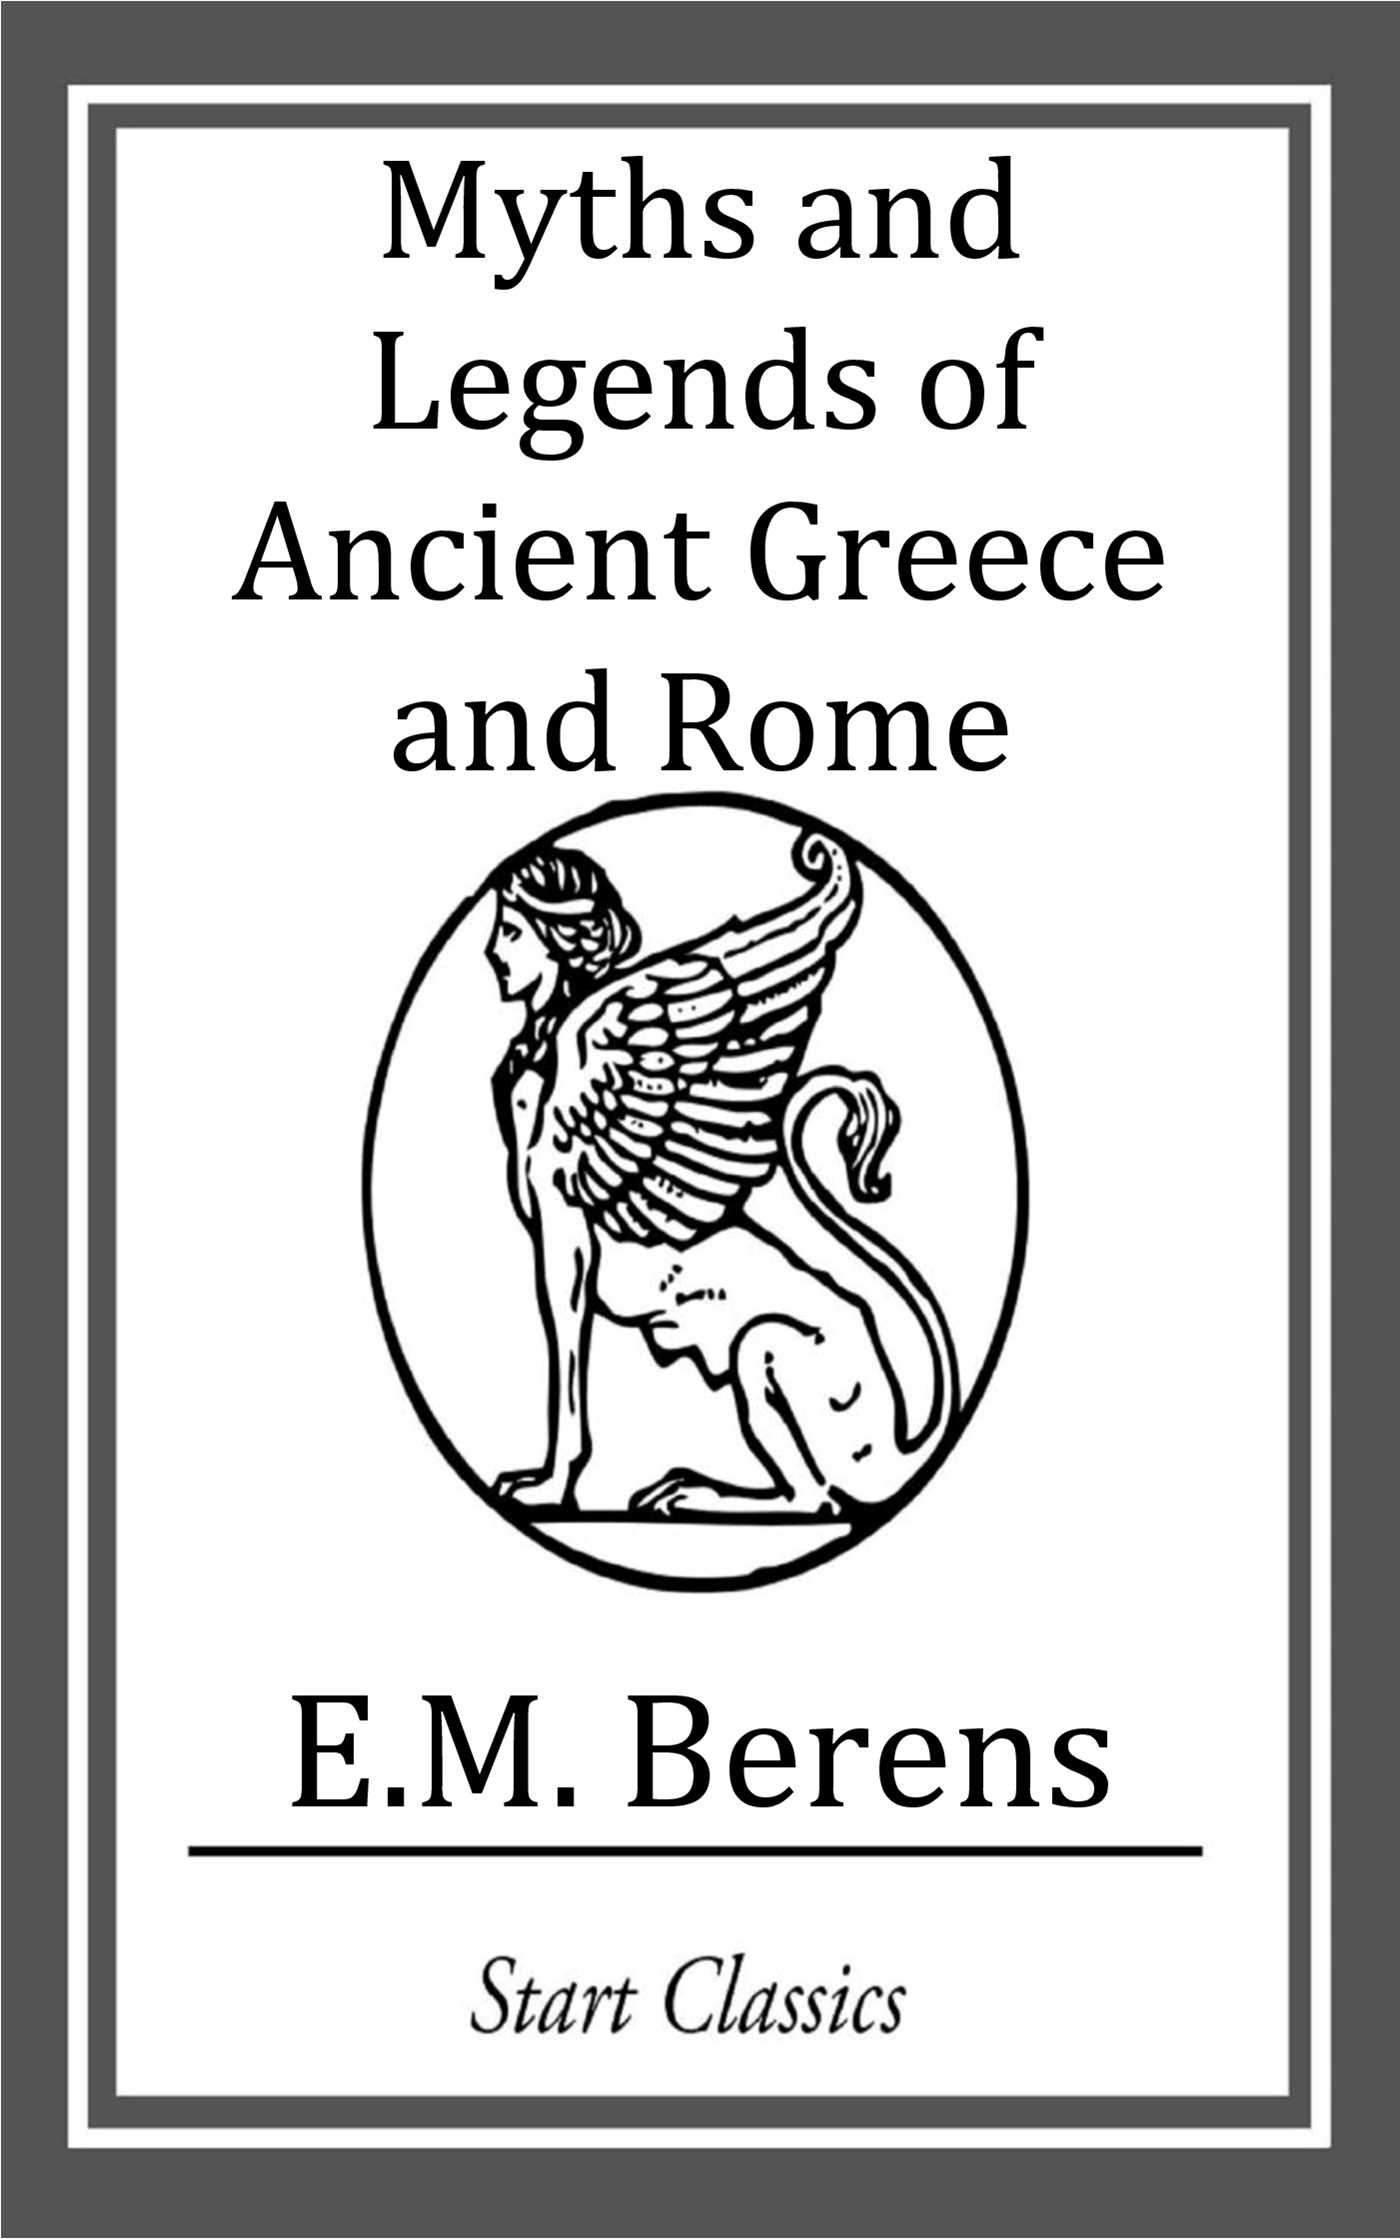 myths and legends of ancient greece and rome ebook by e m berens